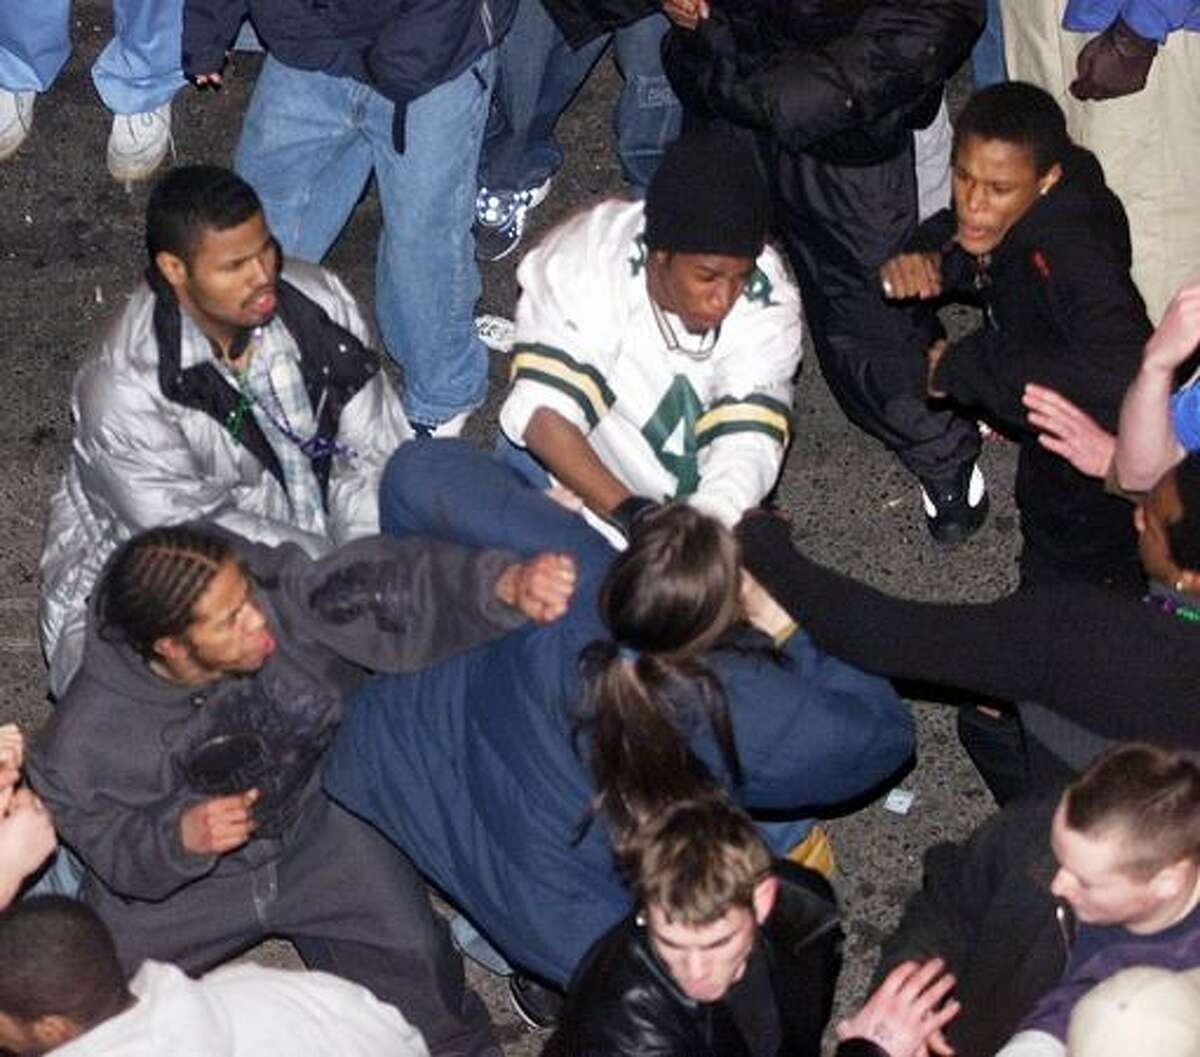 A group of young men beat another man in Pioneer Square as Fat Tuesday celebrations came to a close.